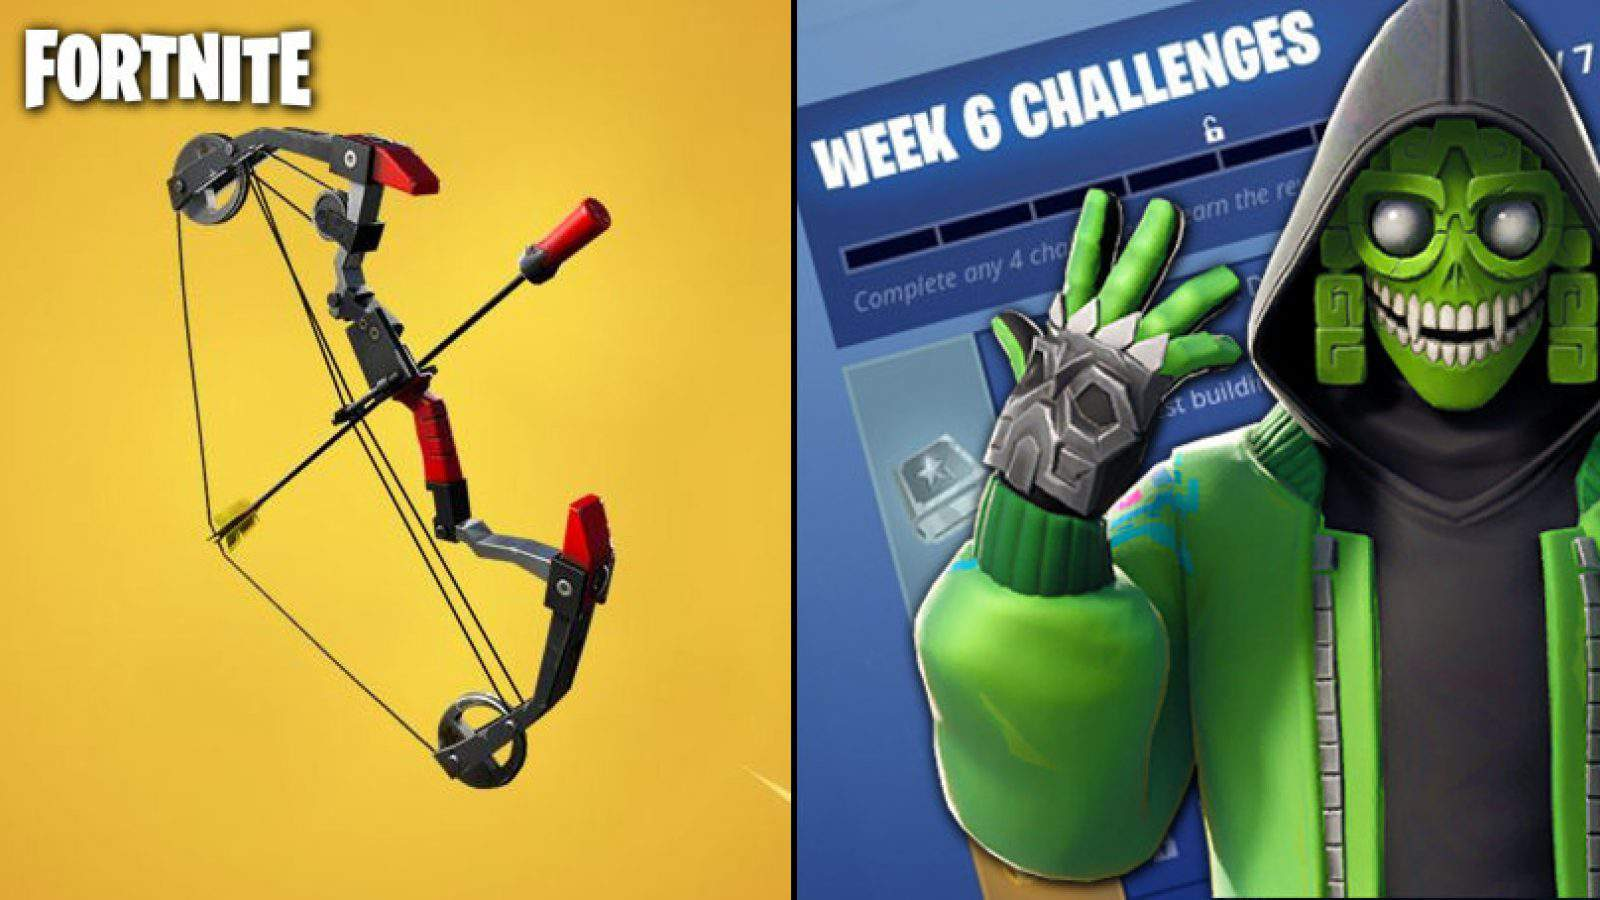 Fortnite Challenges For Week 6 Of Season 8 Have Been Leaked